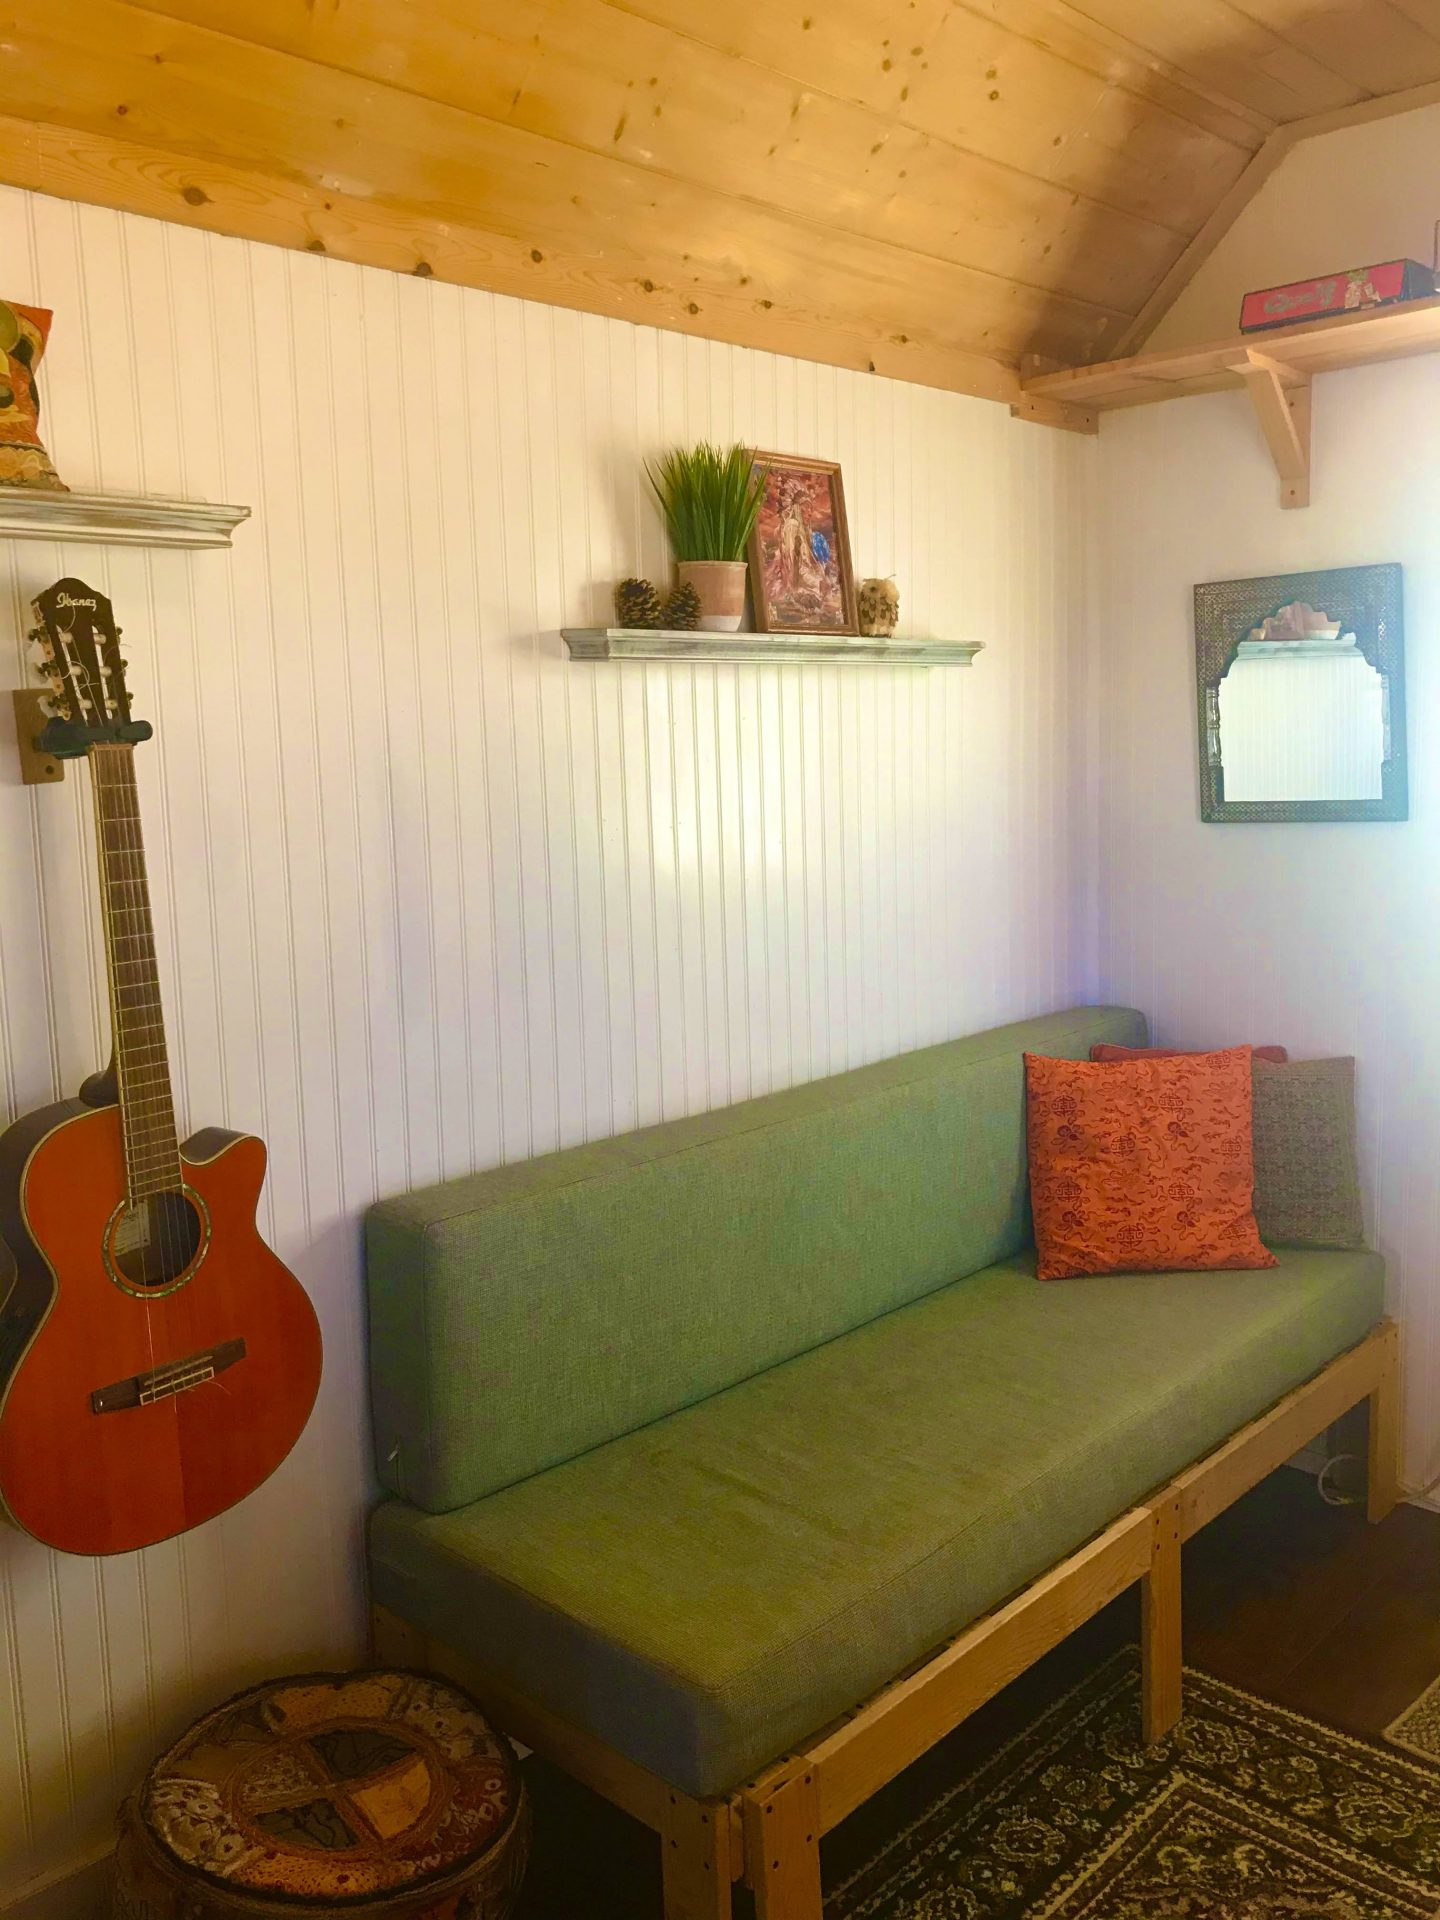 tiny travel chick tiny home airbnb living room